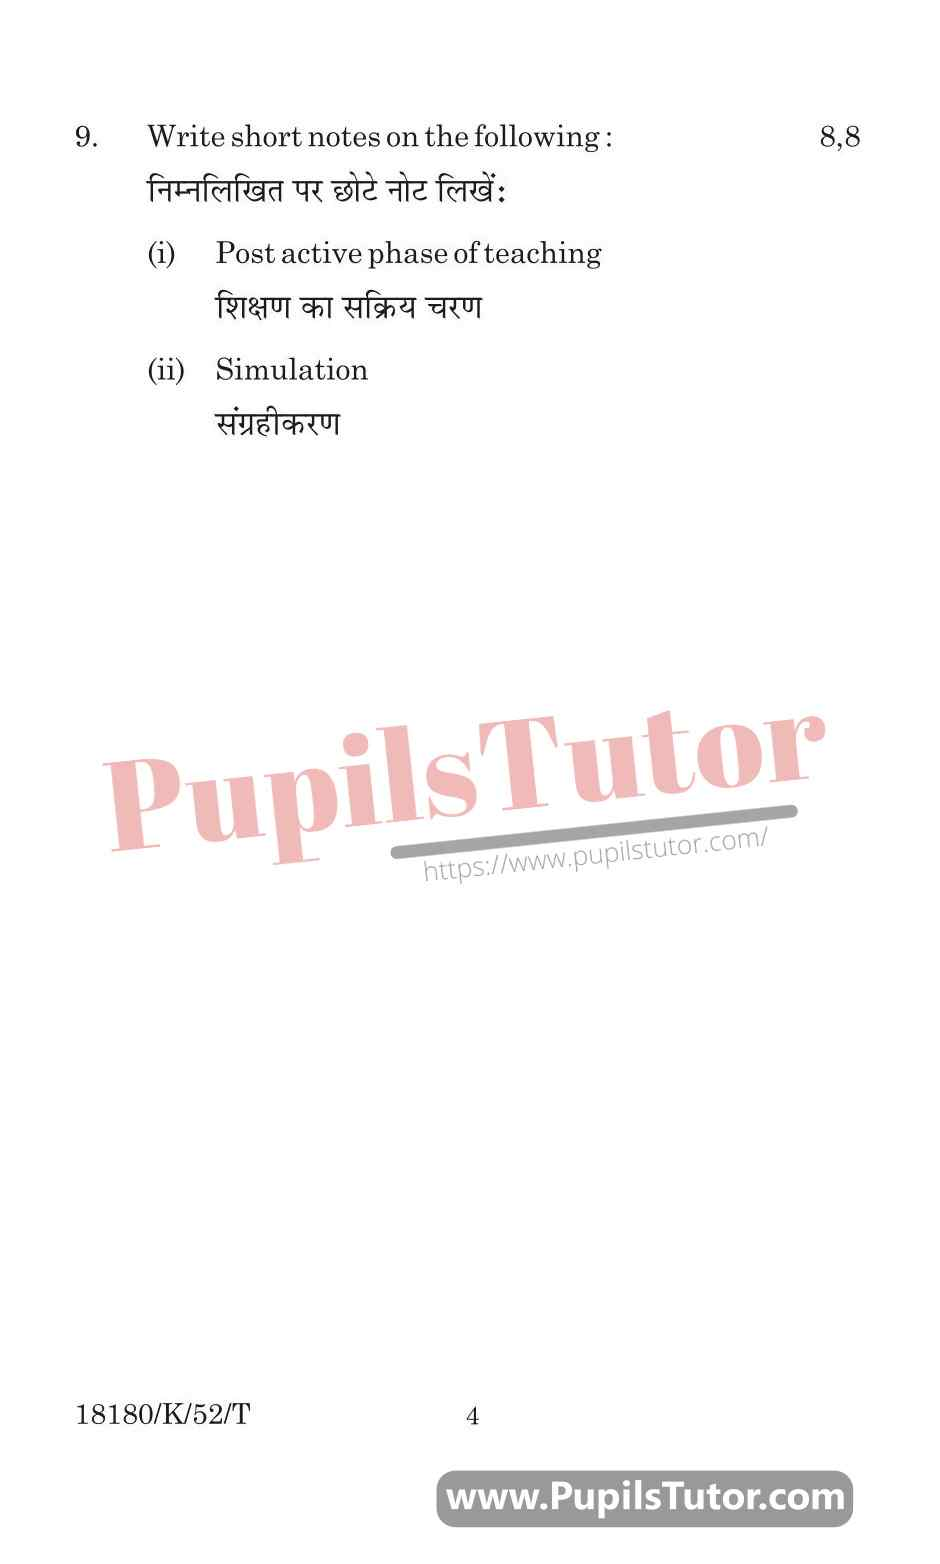 KUK (Kurukshetra University, Haryana) Learning And Teaching Question Paper 2020 For B.Ed 1st And 2nd Year And All The 4 Semesters In English And Hindi Medium Free Download PDF - Page 4 - pupilstutor